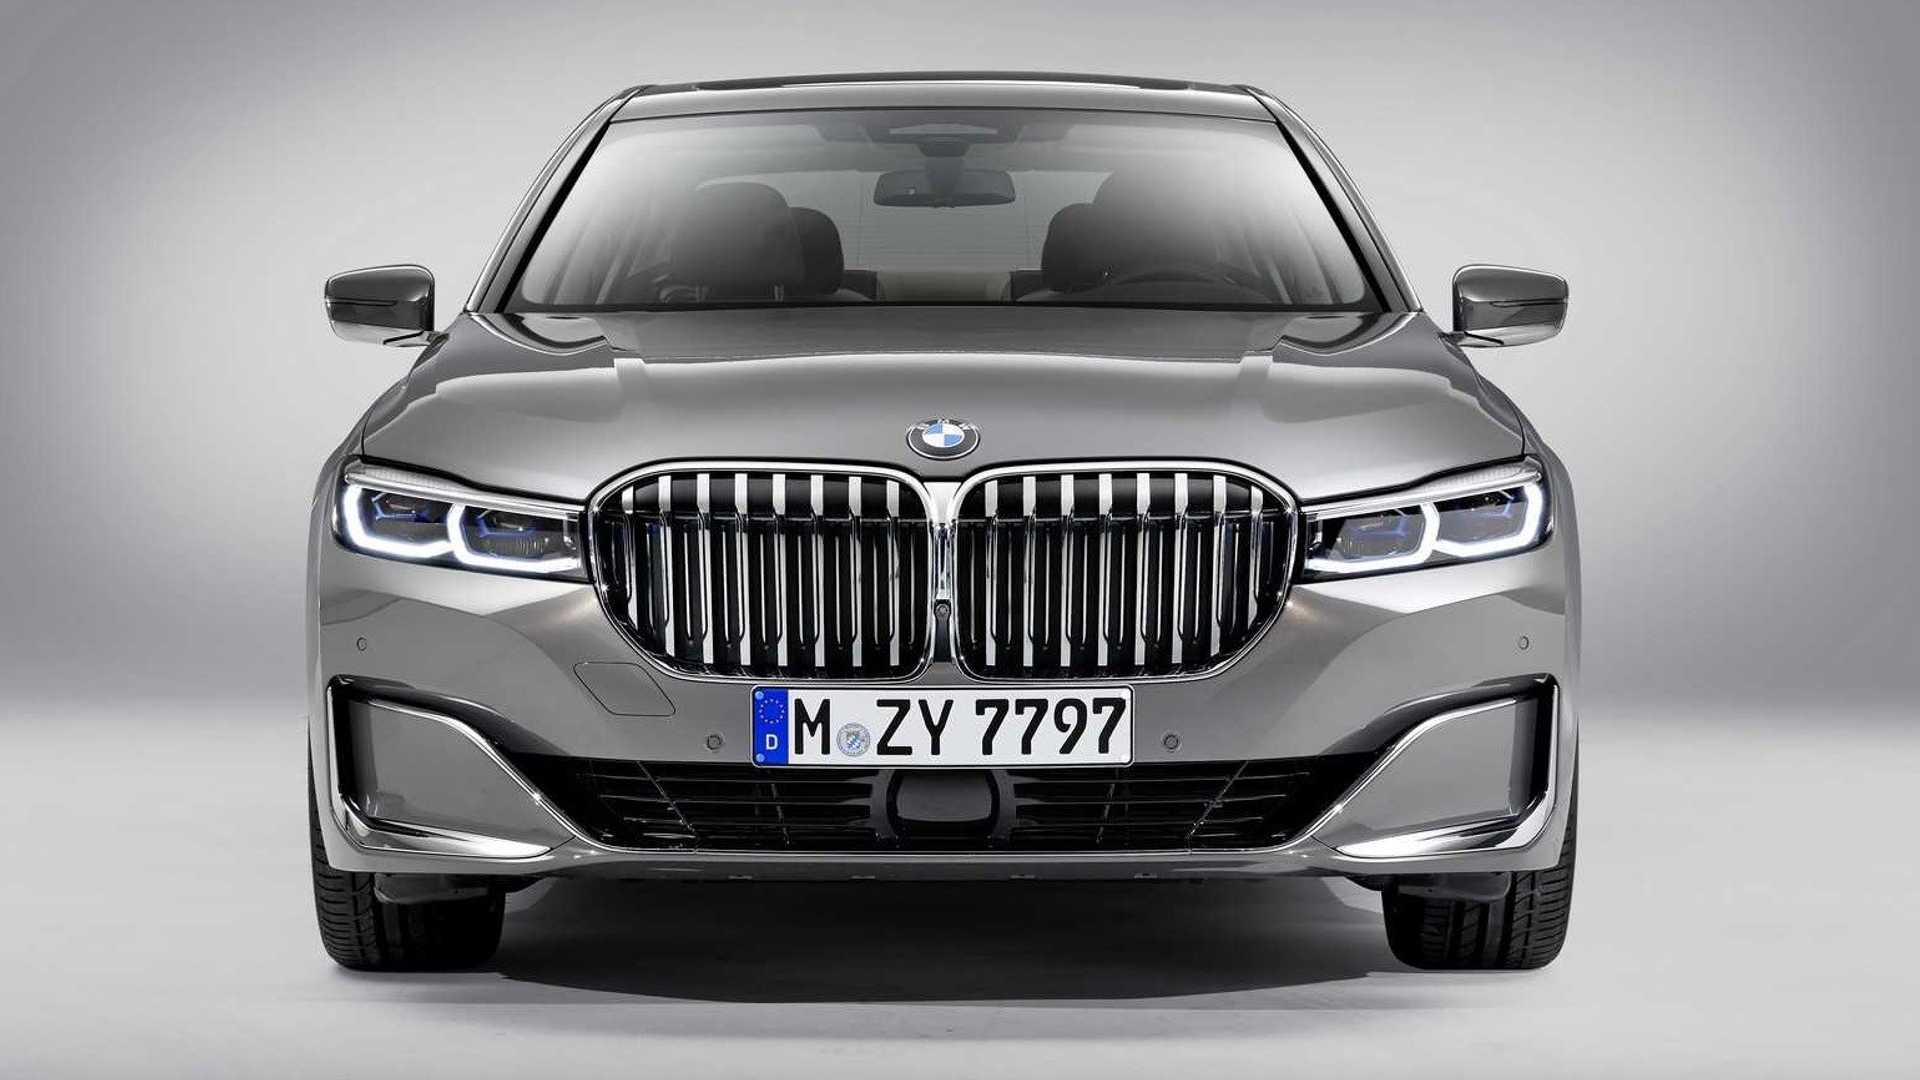 84 All New 2020 BMW 7 Series Configurations for 2020 BMW 7 Series